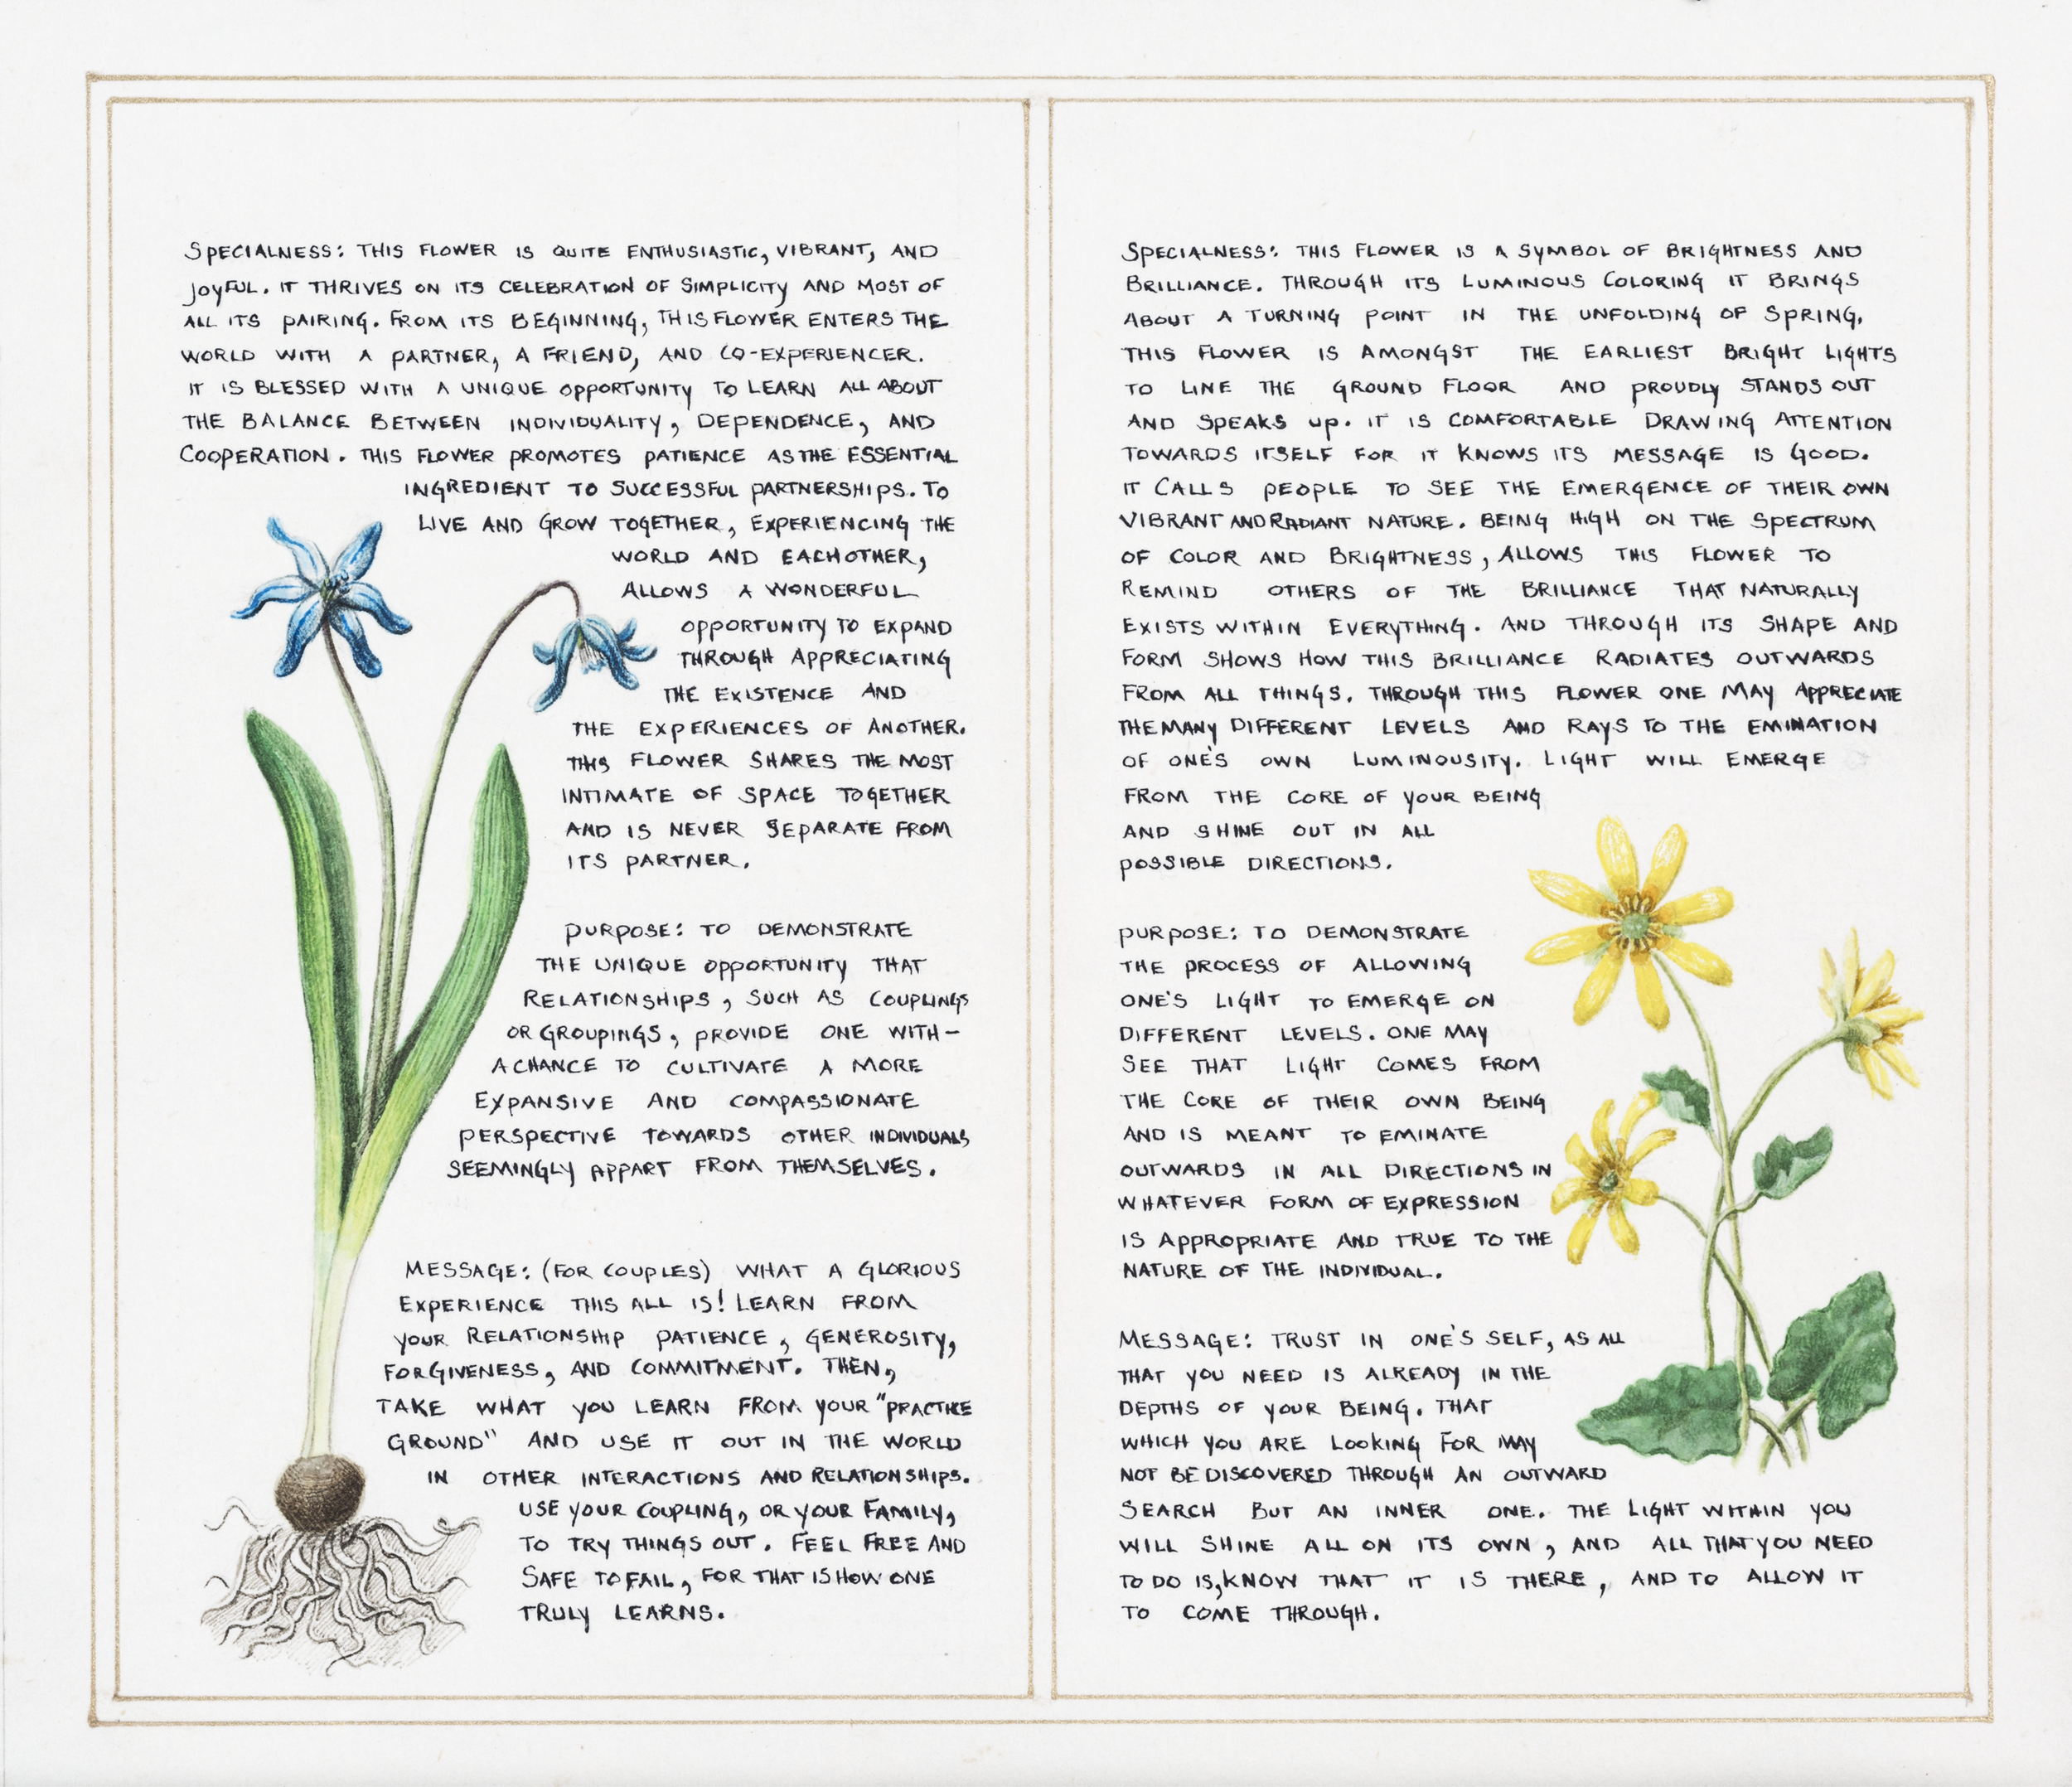 Jonathan Sherman_The Wisdom of the Flowers_crop_2.png